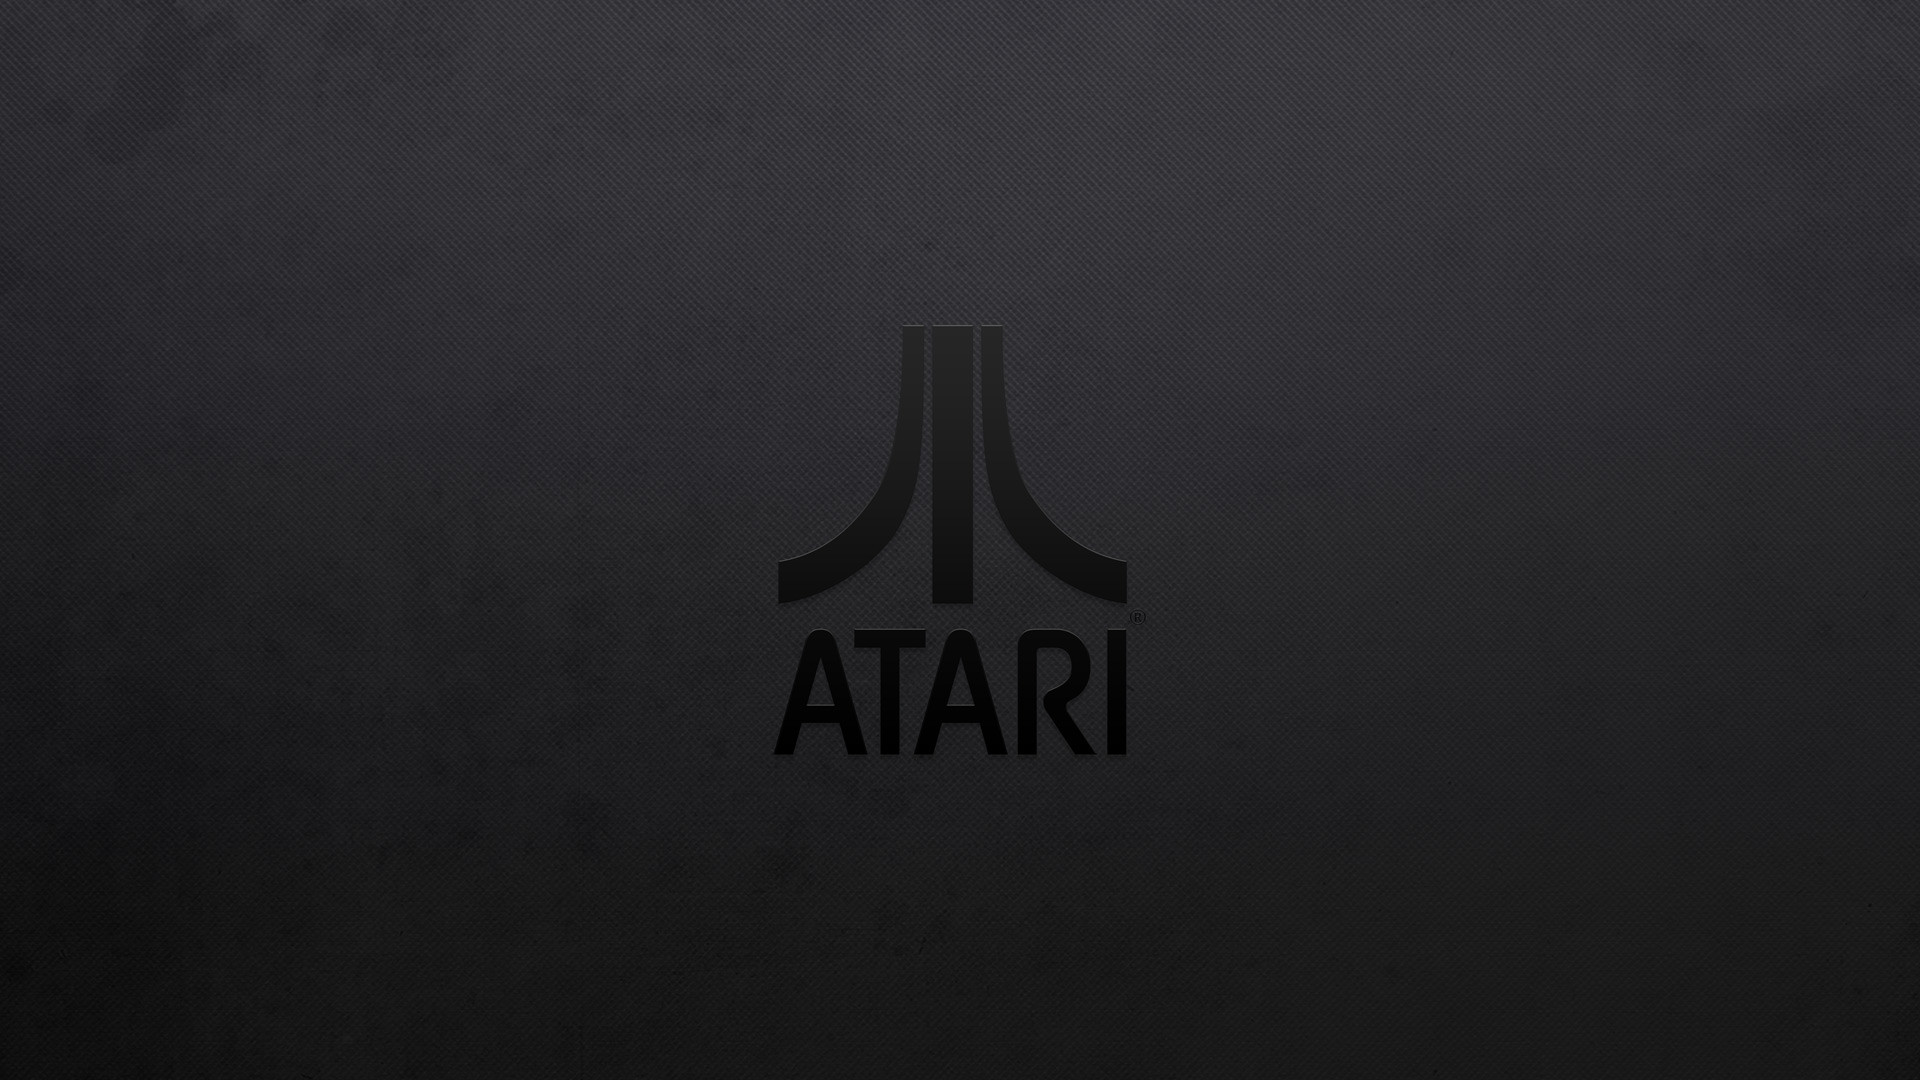 1920x1080 Free Atari Logo Wallpaper